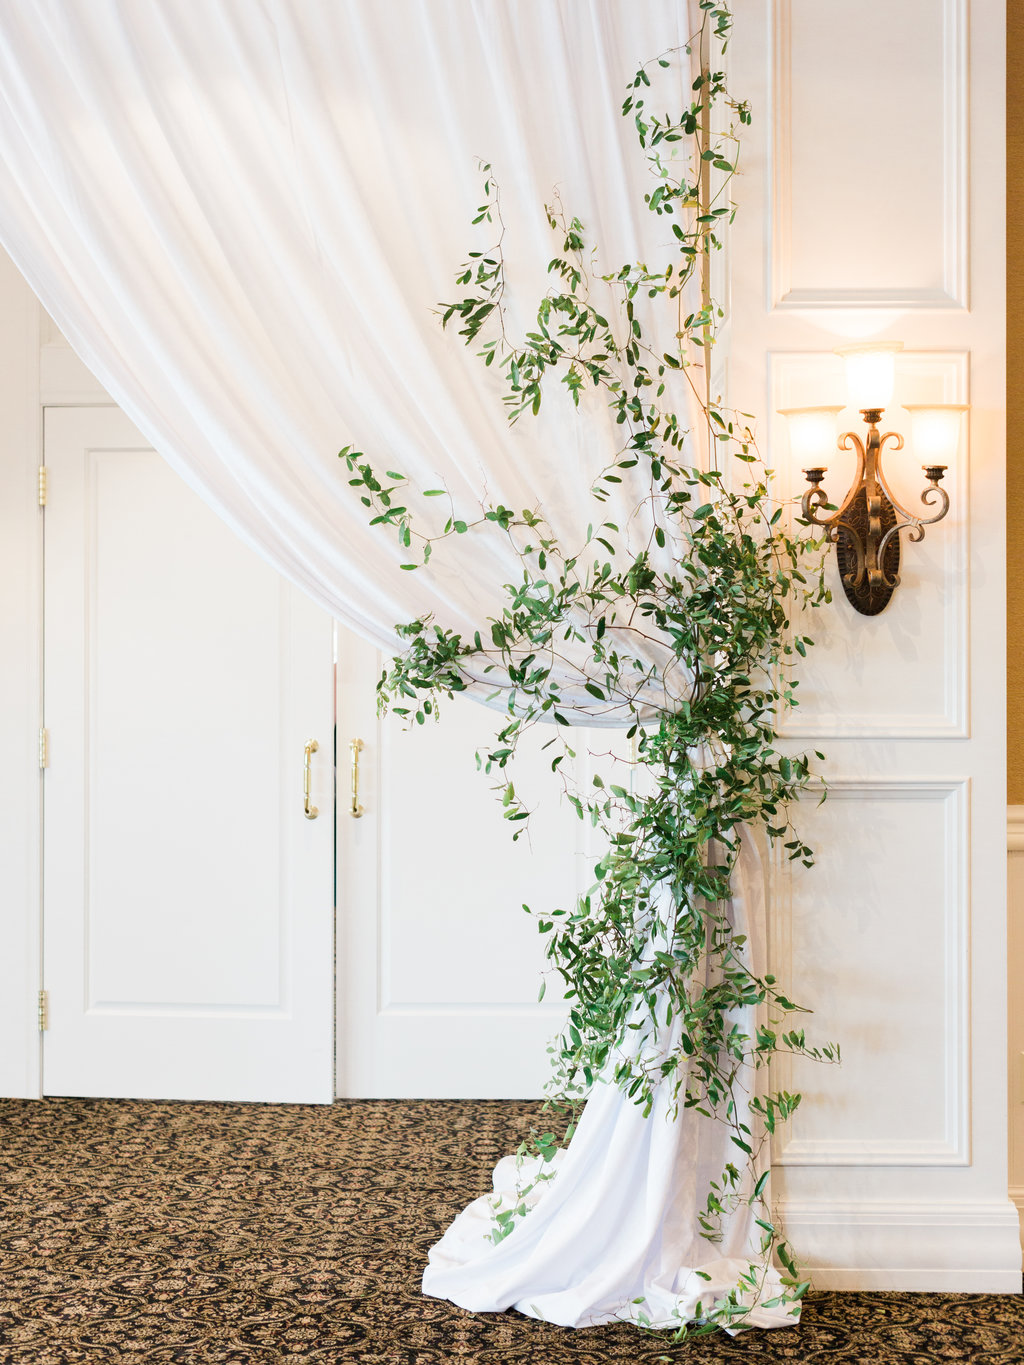 White curtain and greenery wedding decor for entryway.